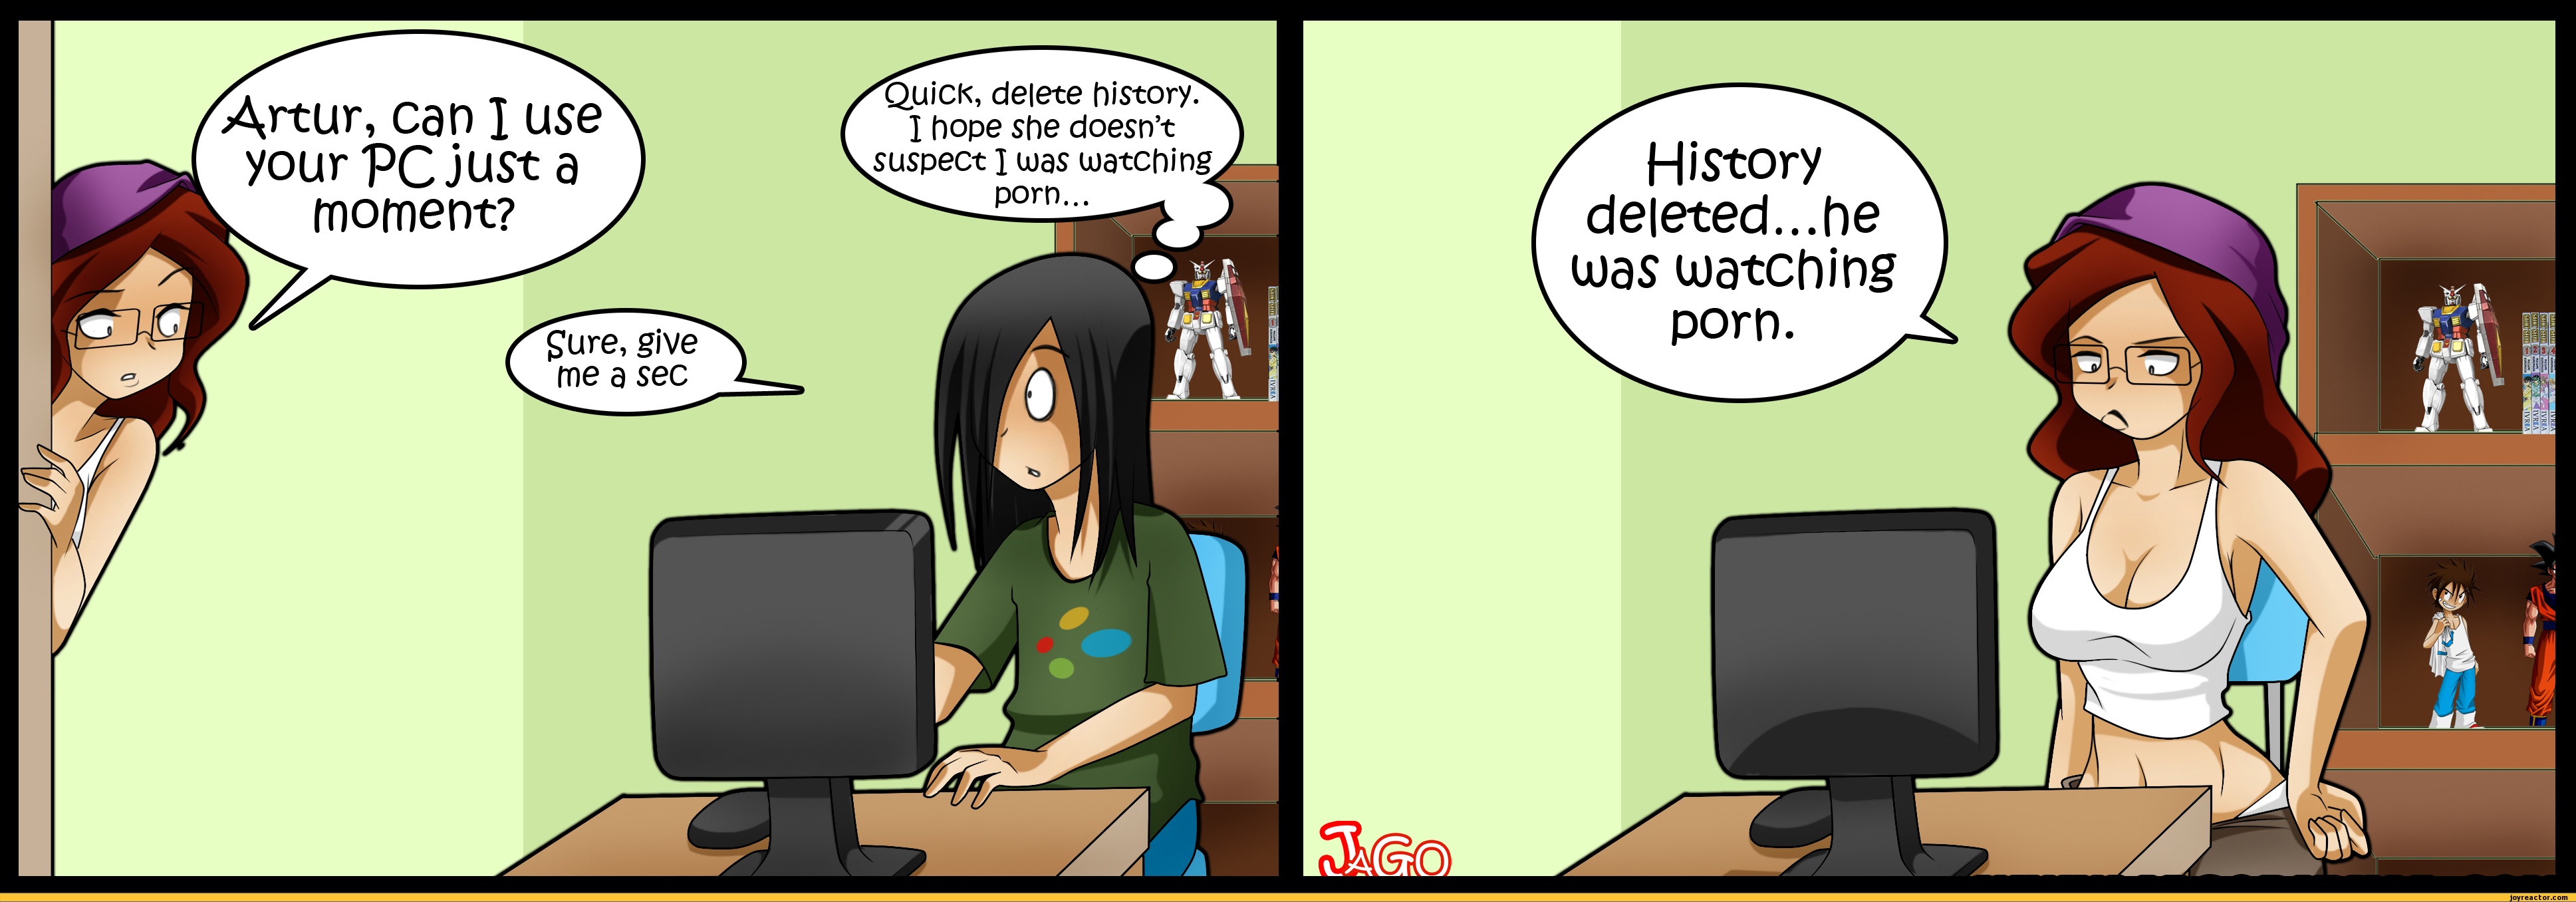 comics-JaGo-browser-history-625958.jpeg